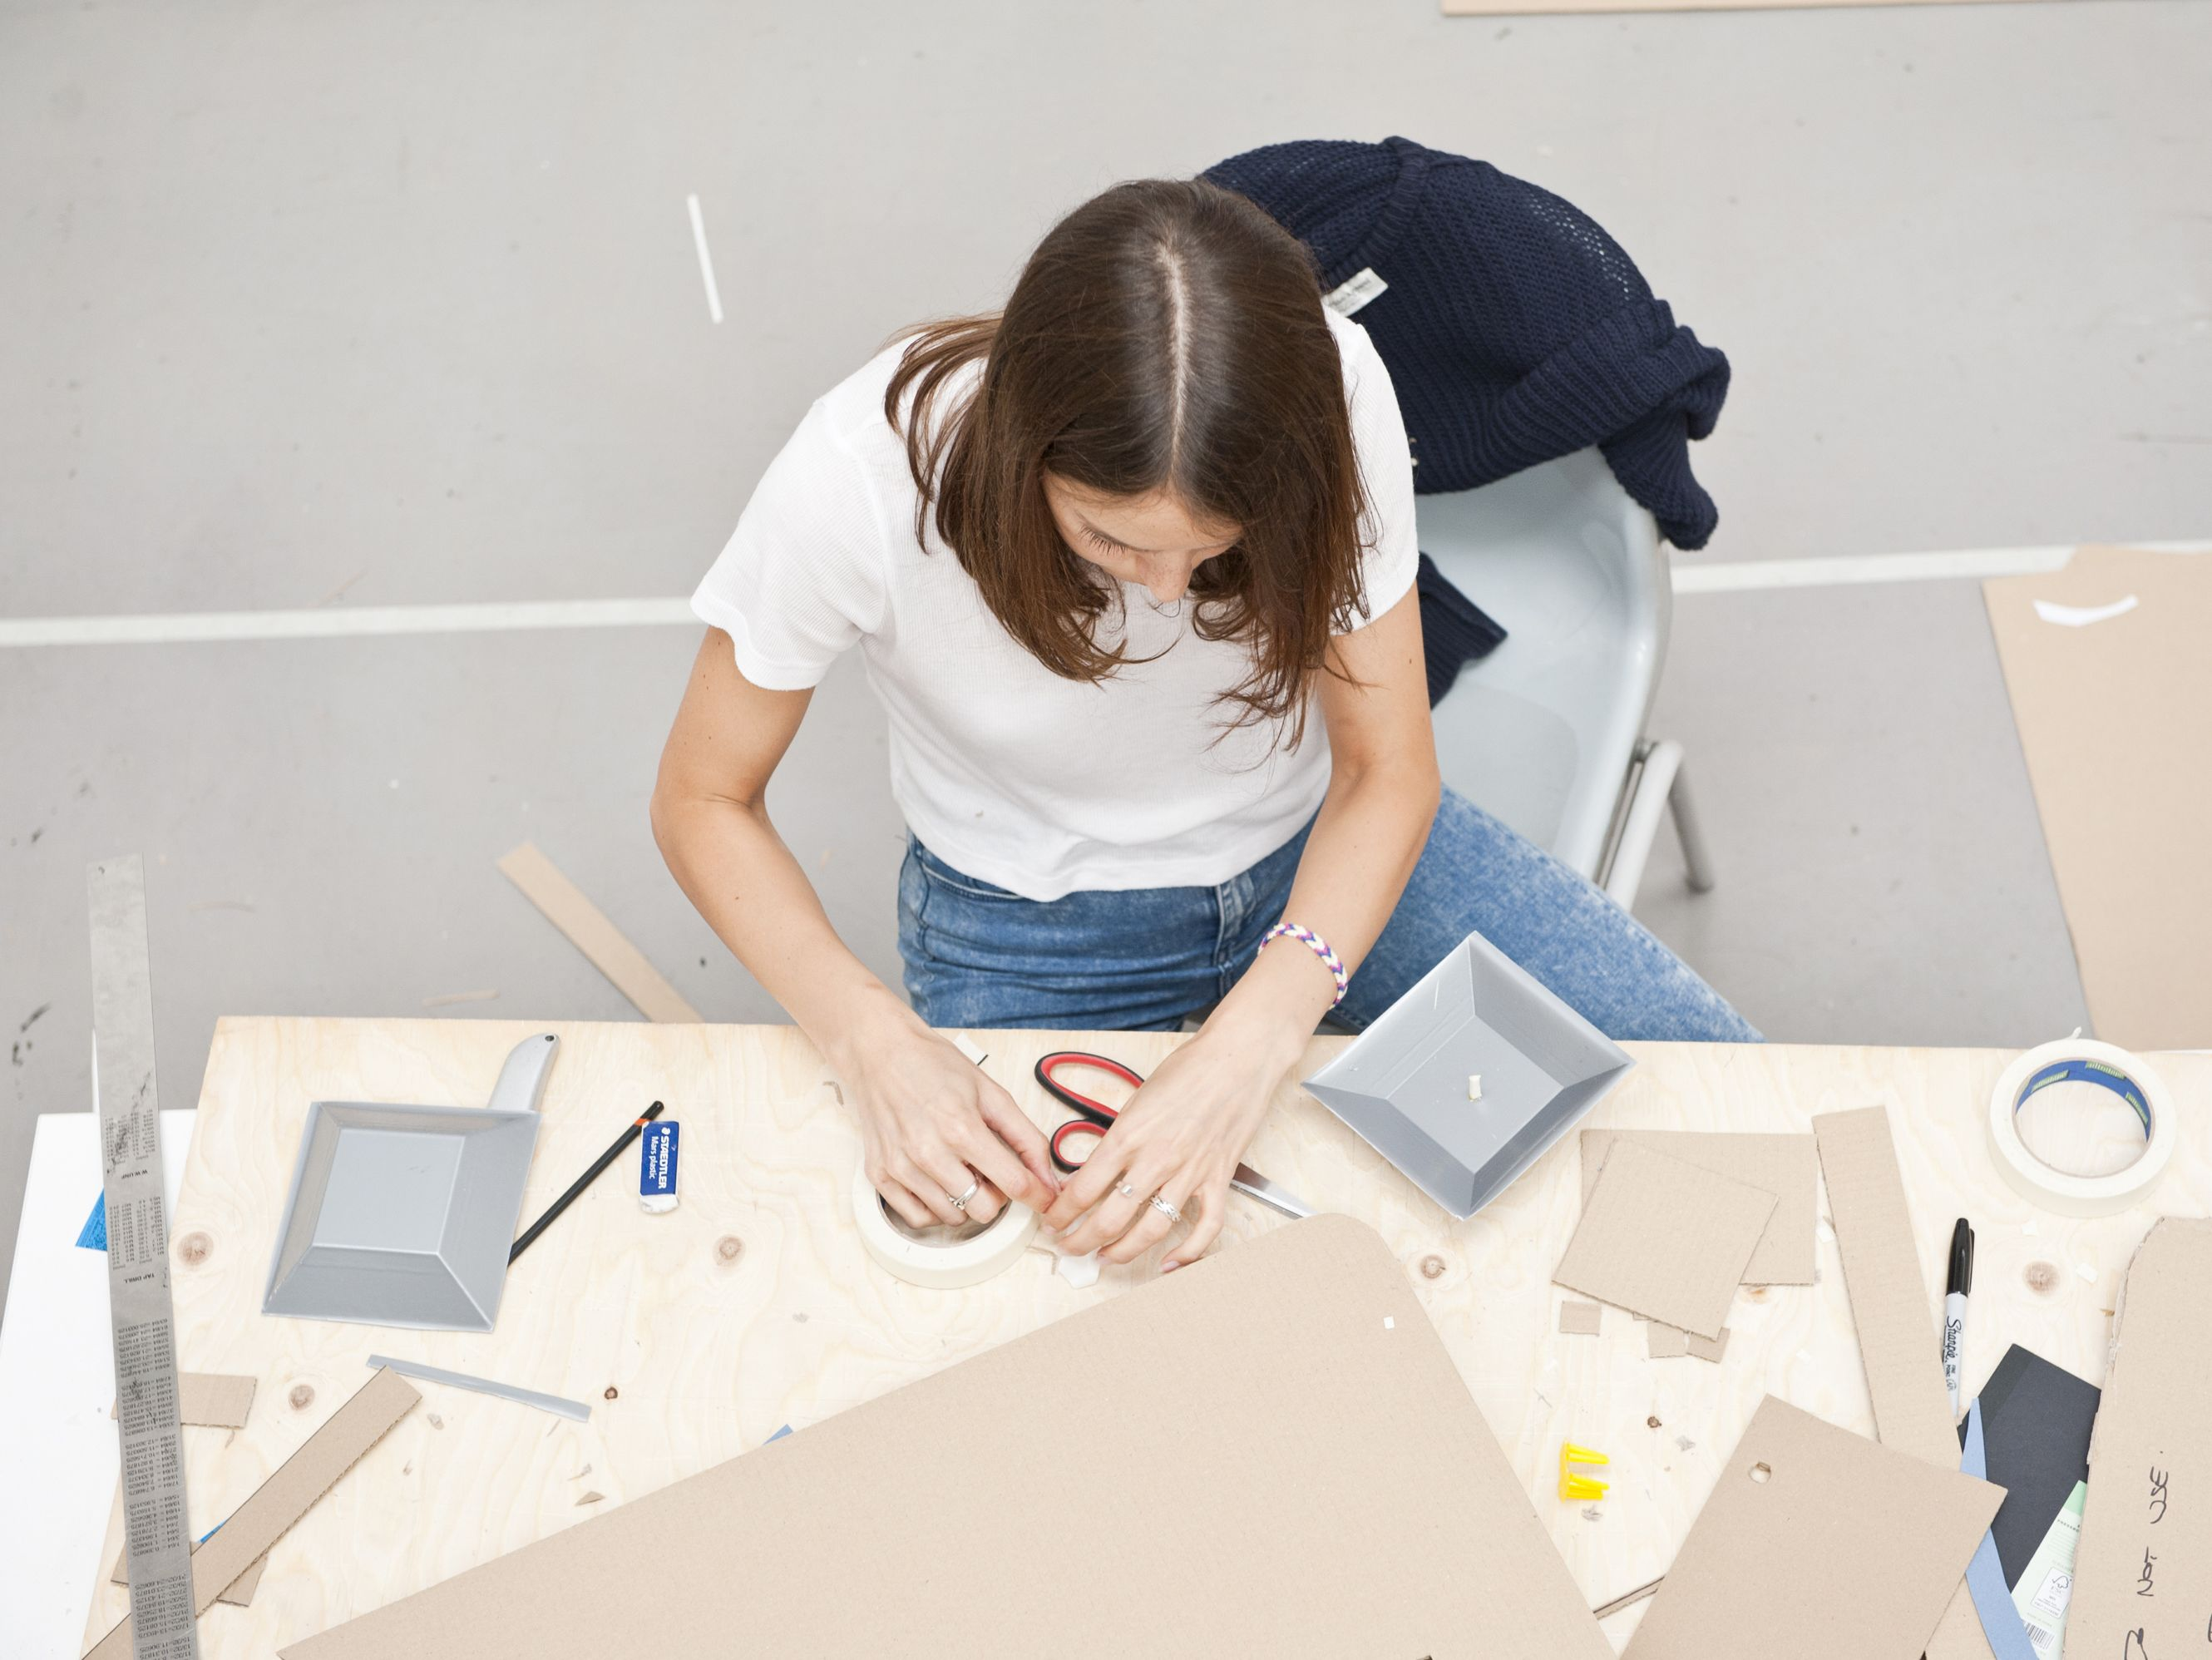 View down to a student seated at a desk and using various tool and cardboard materials.